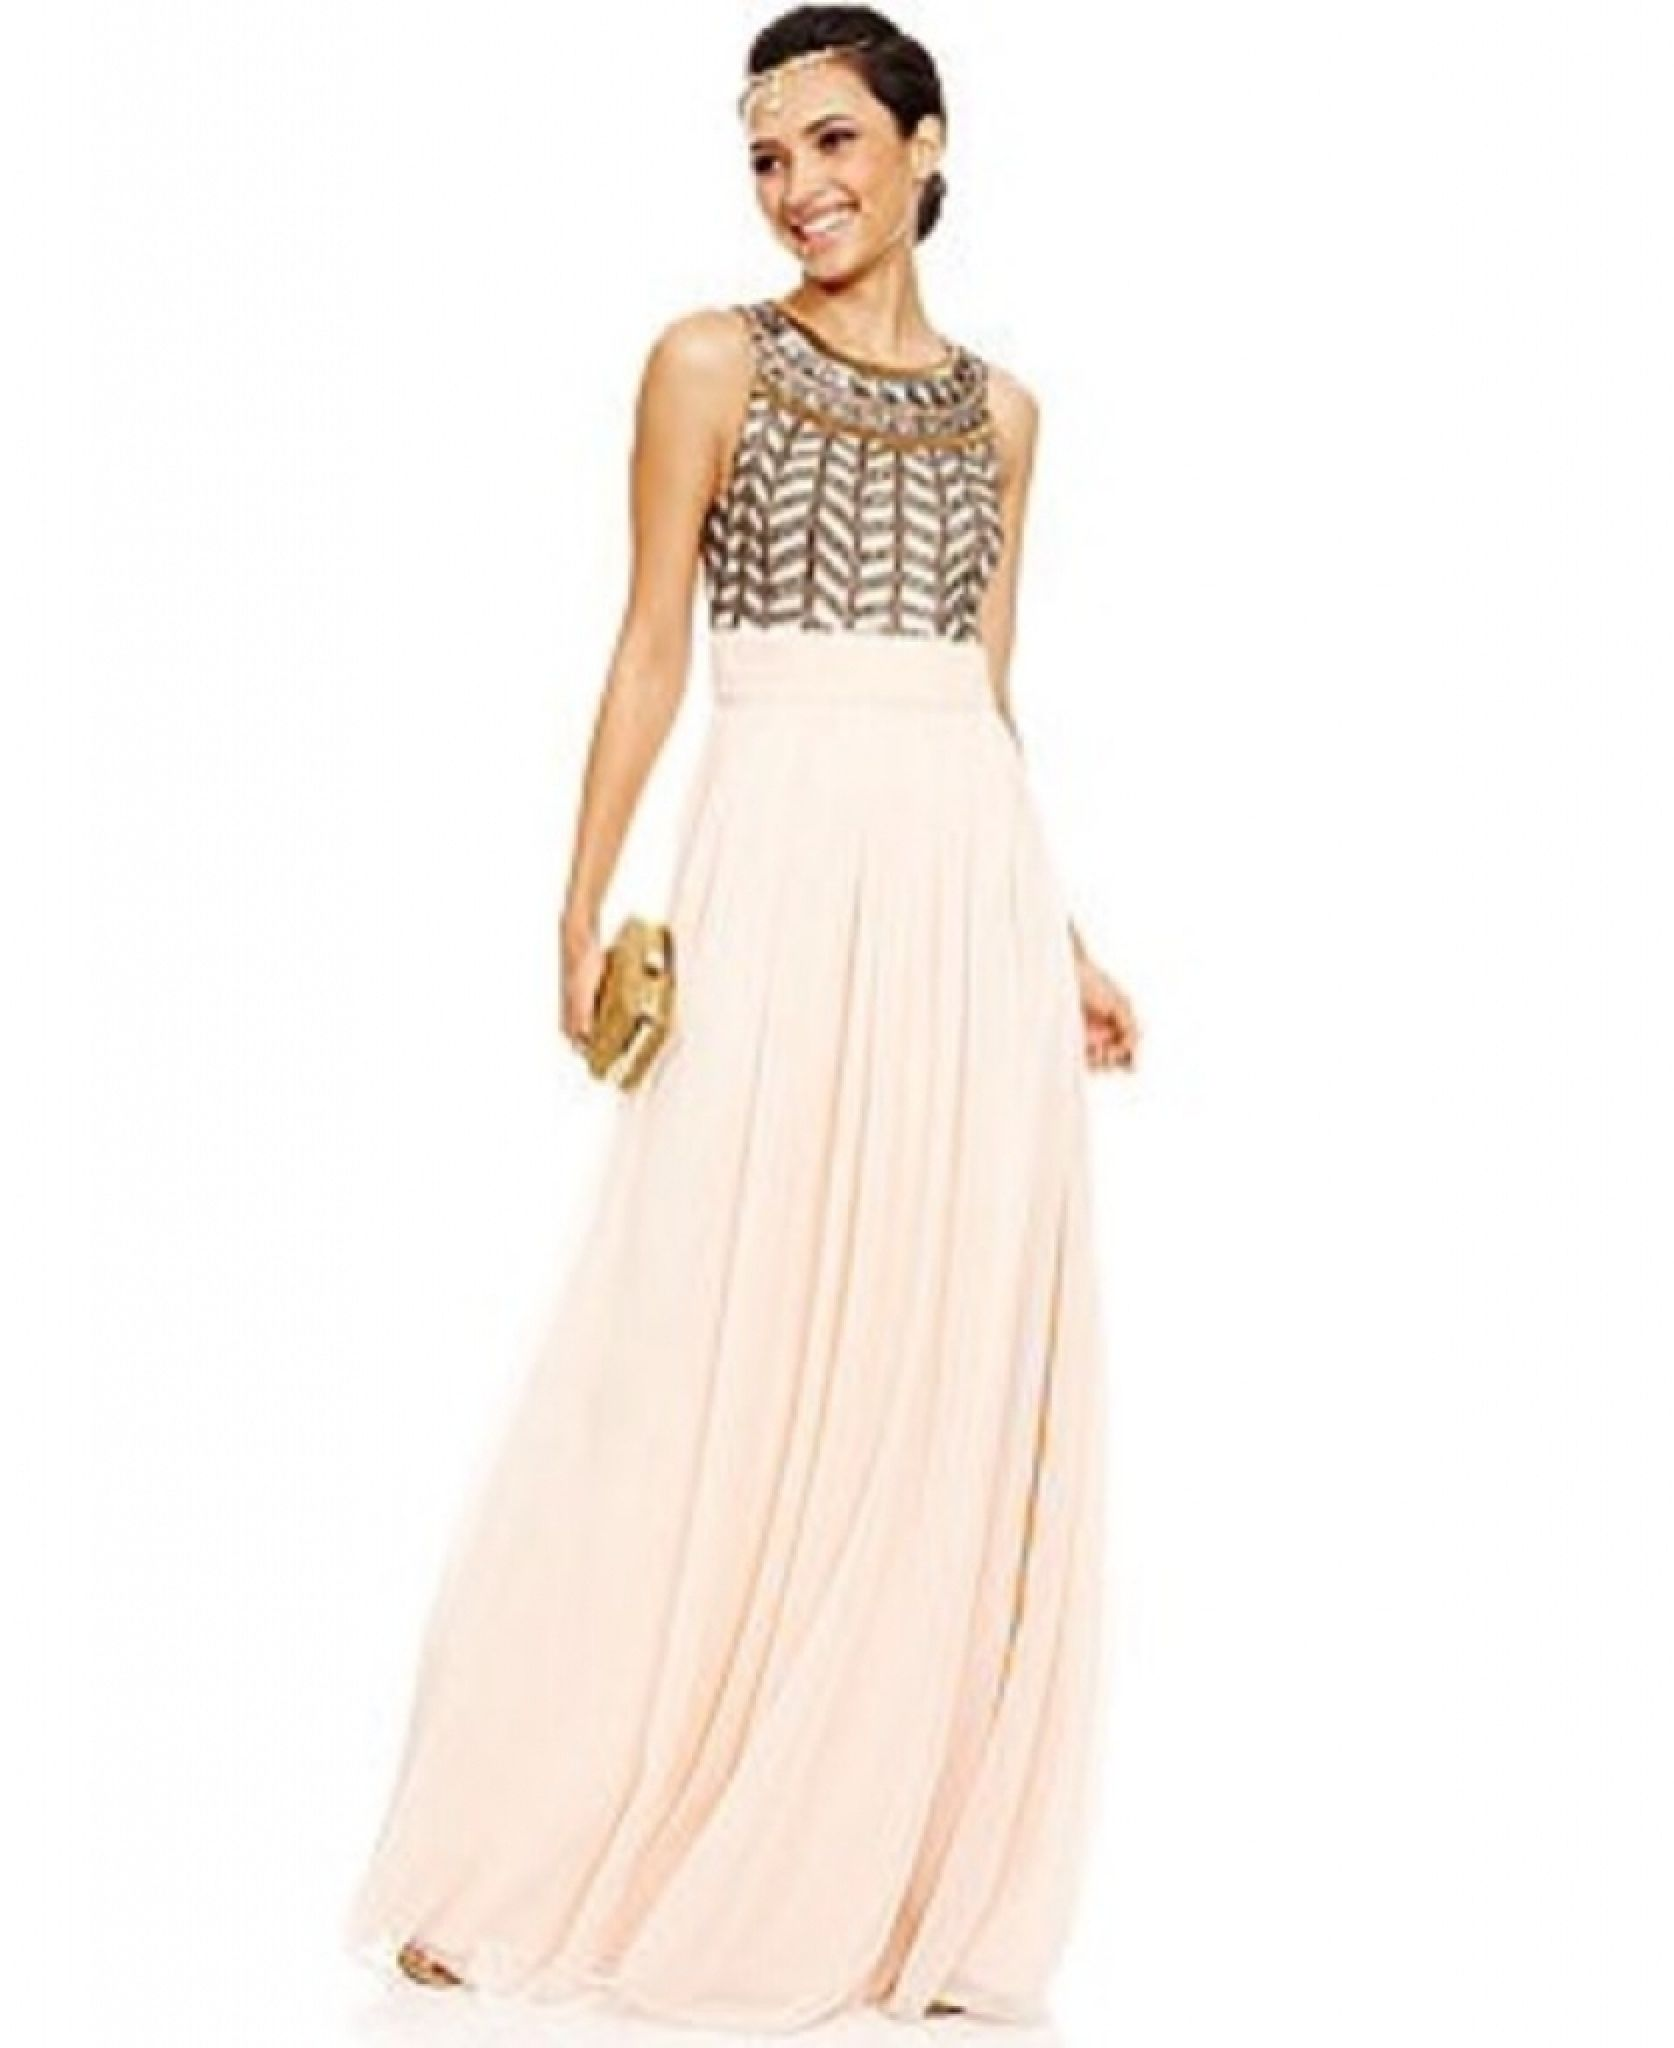 9dfd3d38216 macy s dresses for wedding guests - dress for country wedding guest Check  more at http